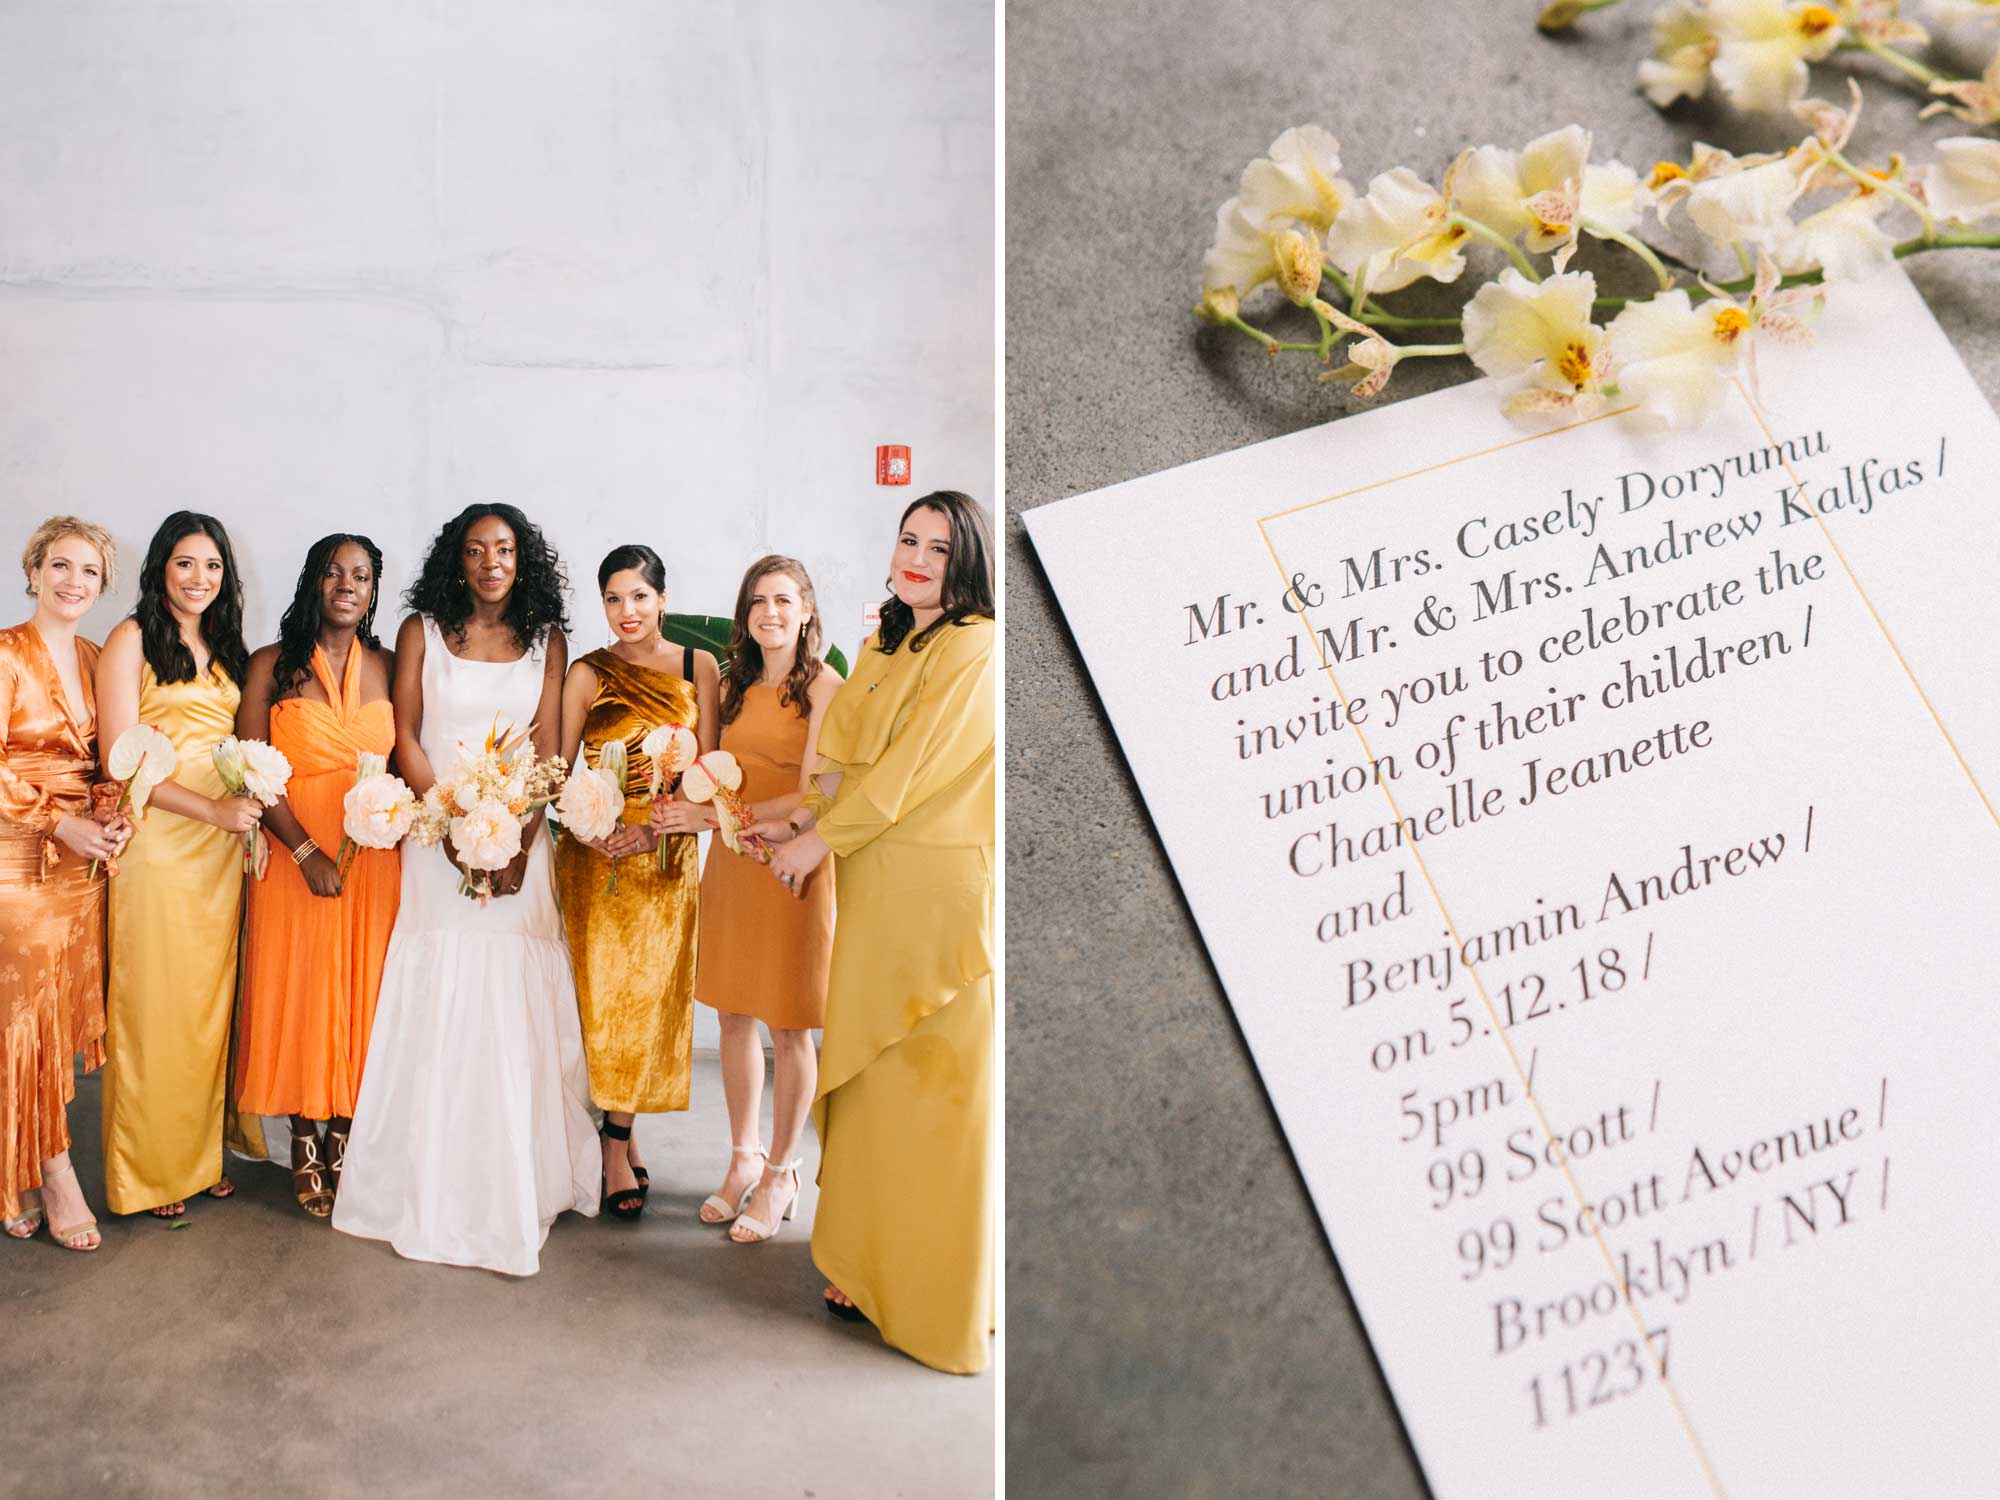 Faille A-line Gown with Gathered Tiers and Mix Match Orange Bridesmaids Dresses